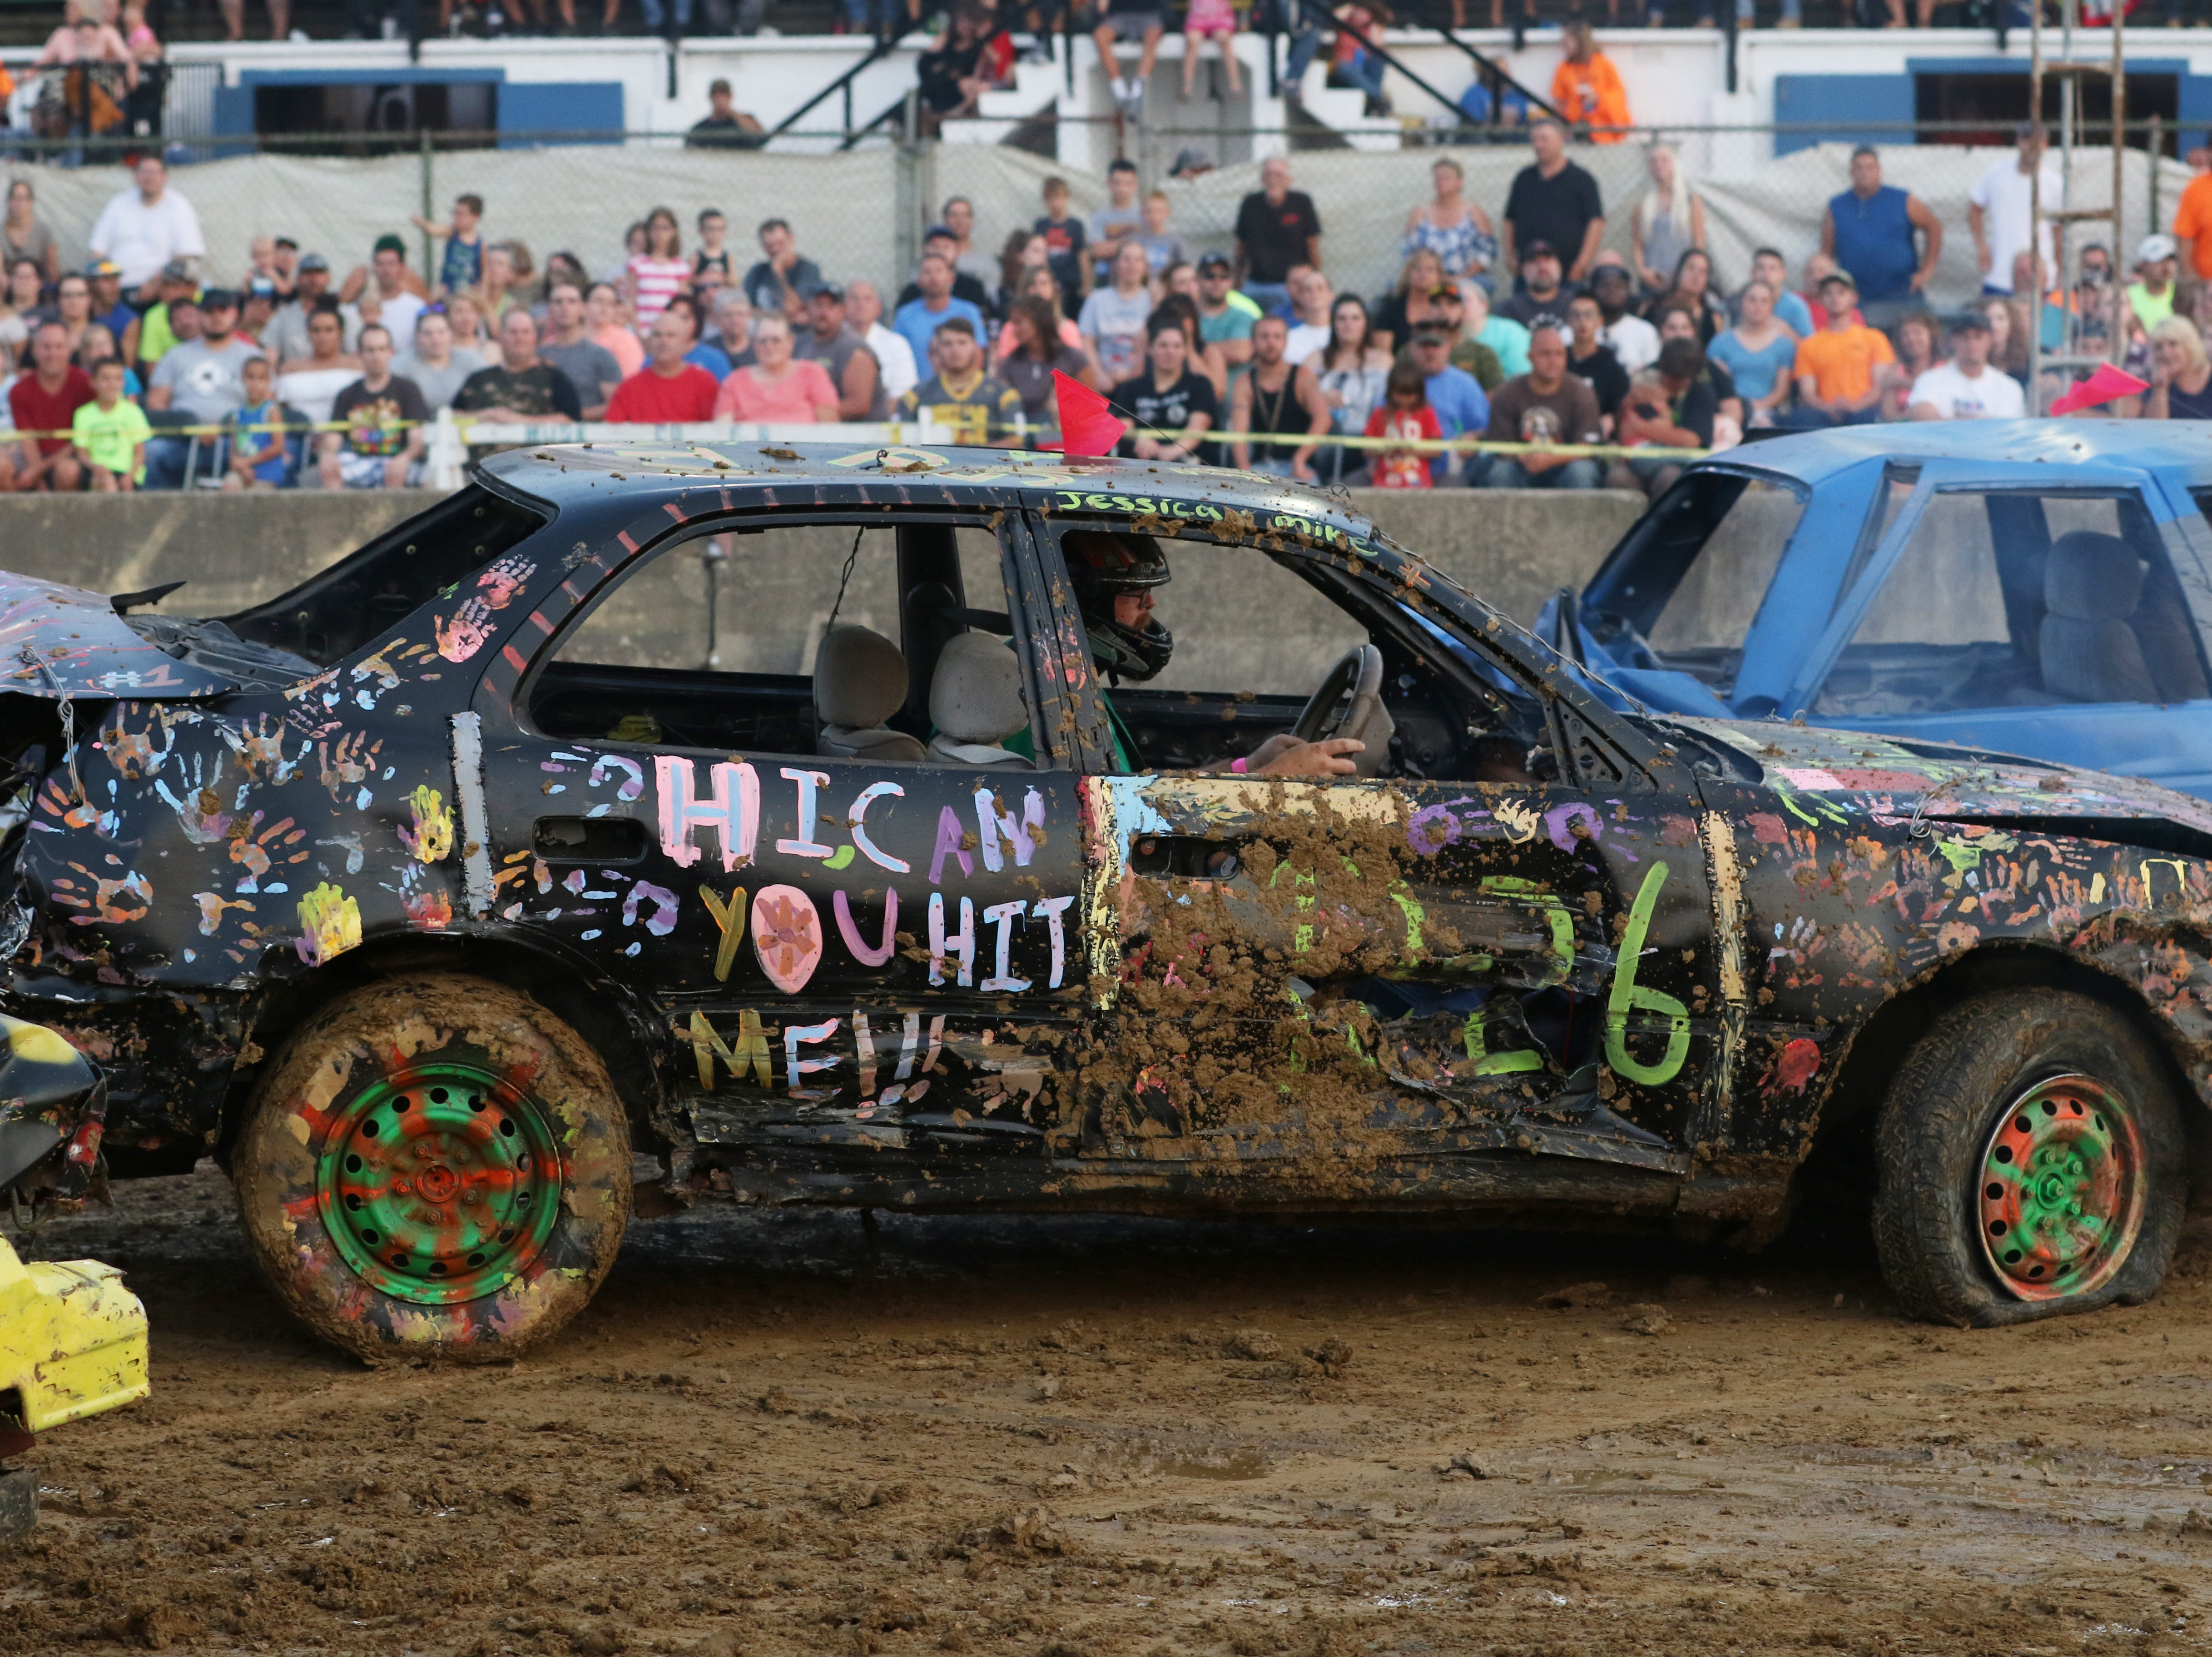 Jimmy Gibson his in 1226 car during the Sarge and Sons Demolition Derby at the Muskingum County Fair on Tuesday.